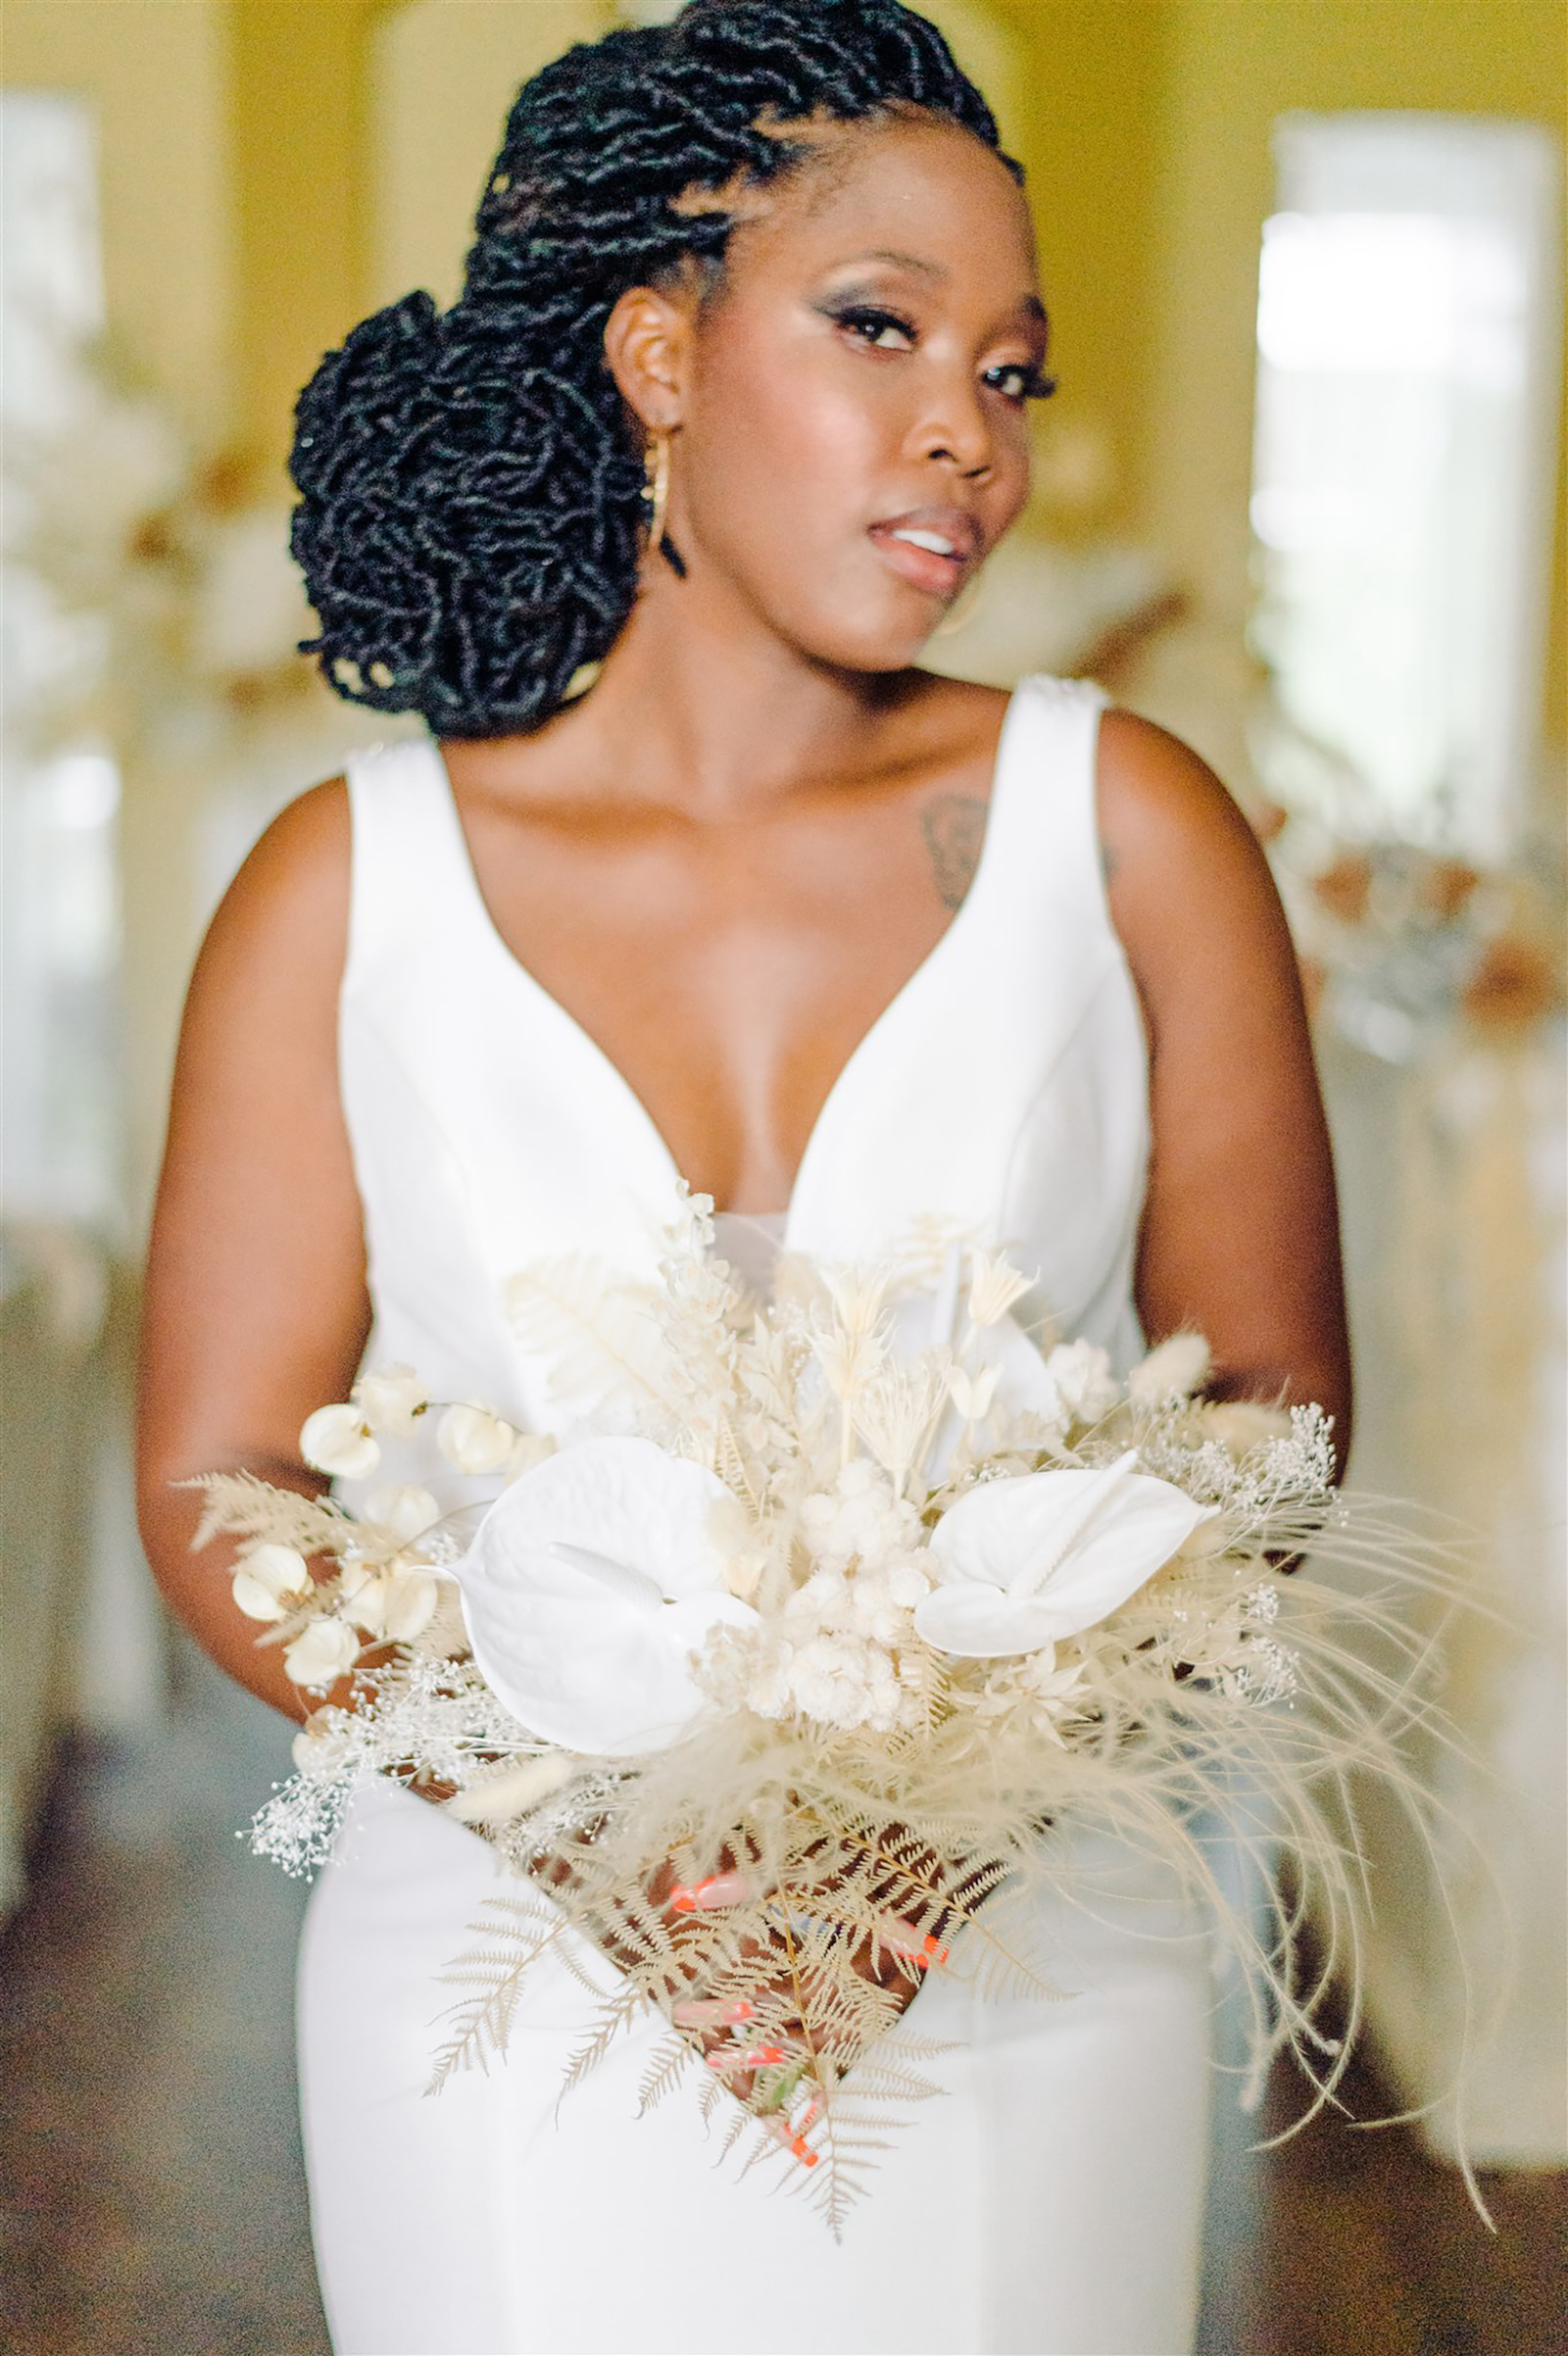 Bride in Classic V Neck Fitted Wedding Dress Holding White Preserved Flowers and Foliage, Feathers, Floral Bouquet | Tampa Bay Wedding Planner, Florist and Designer John Campbell Weddings | Wedding Hair and Makeup Michele Renee the Studio